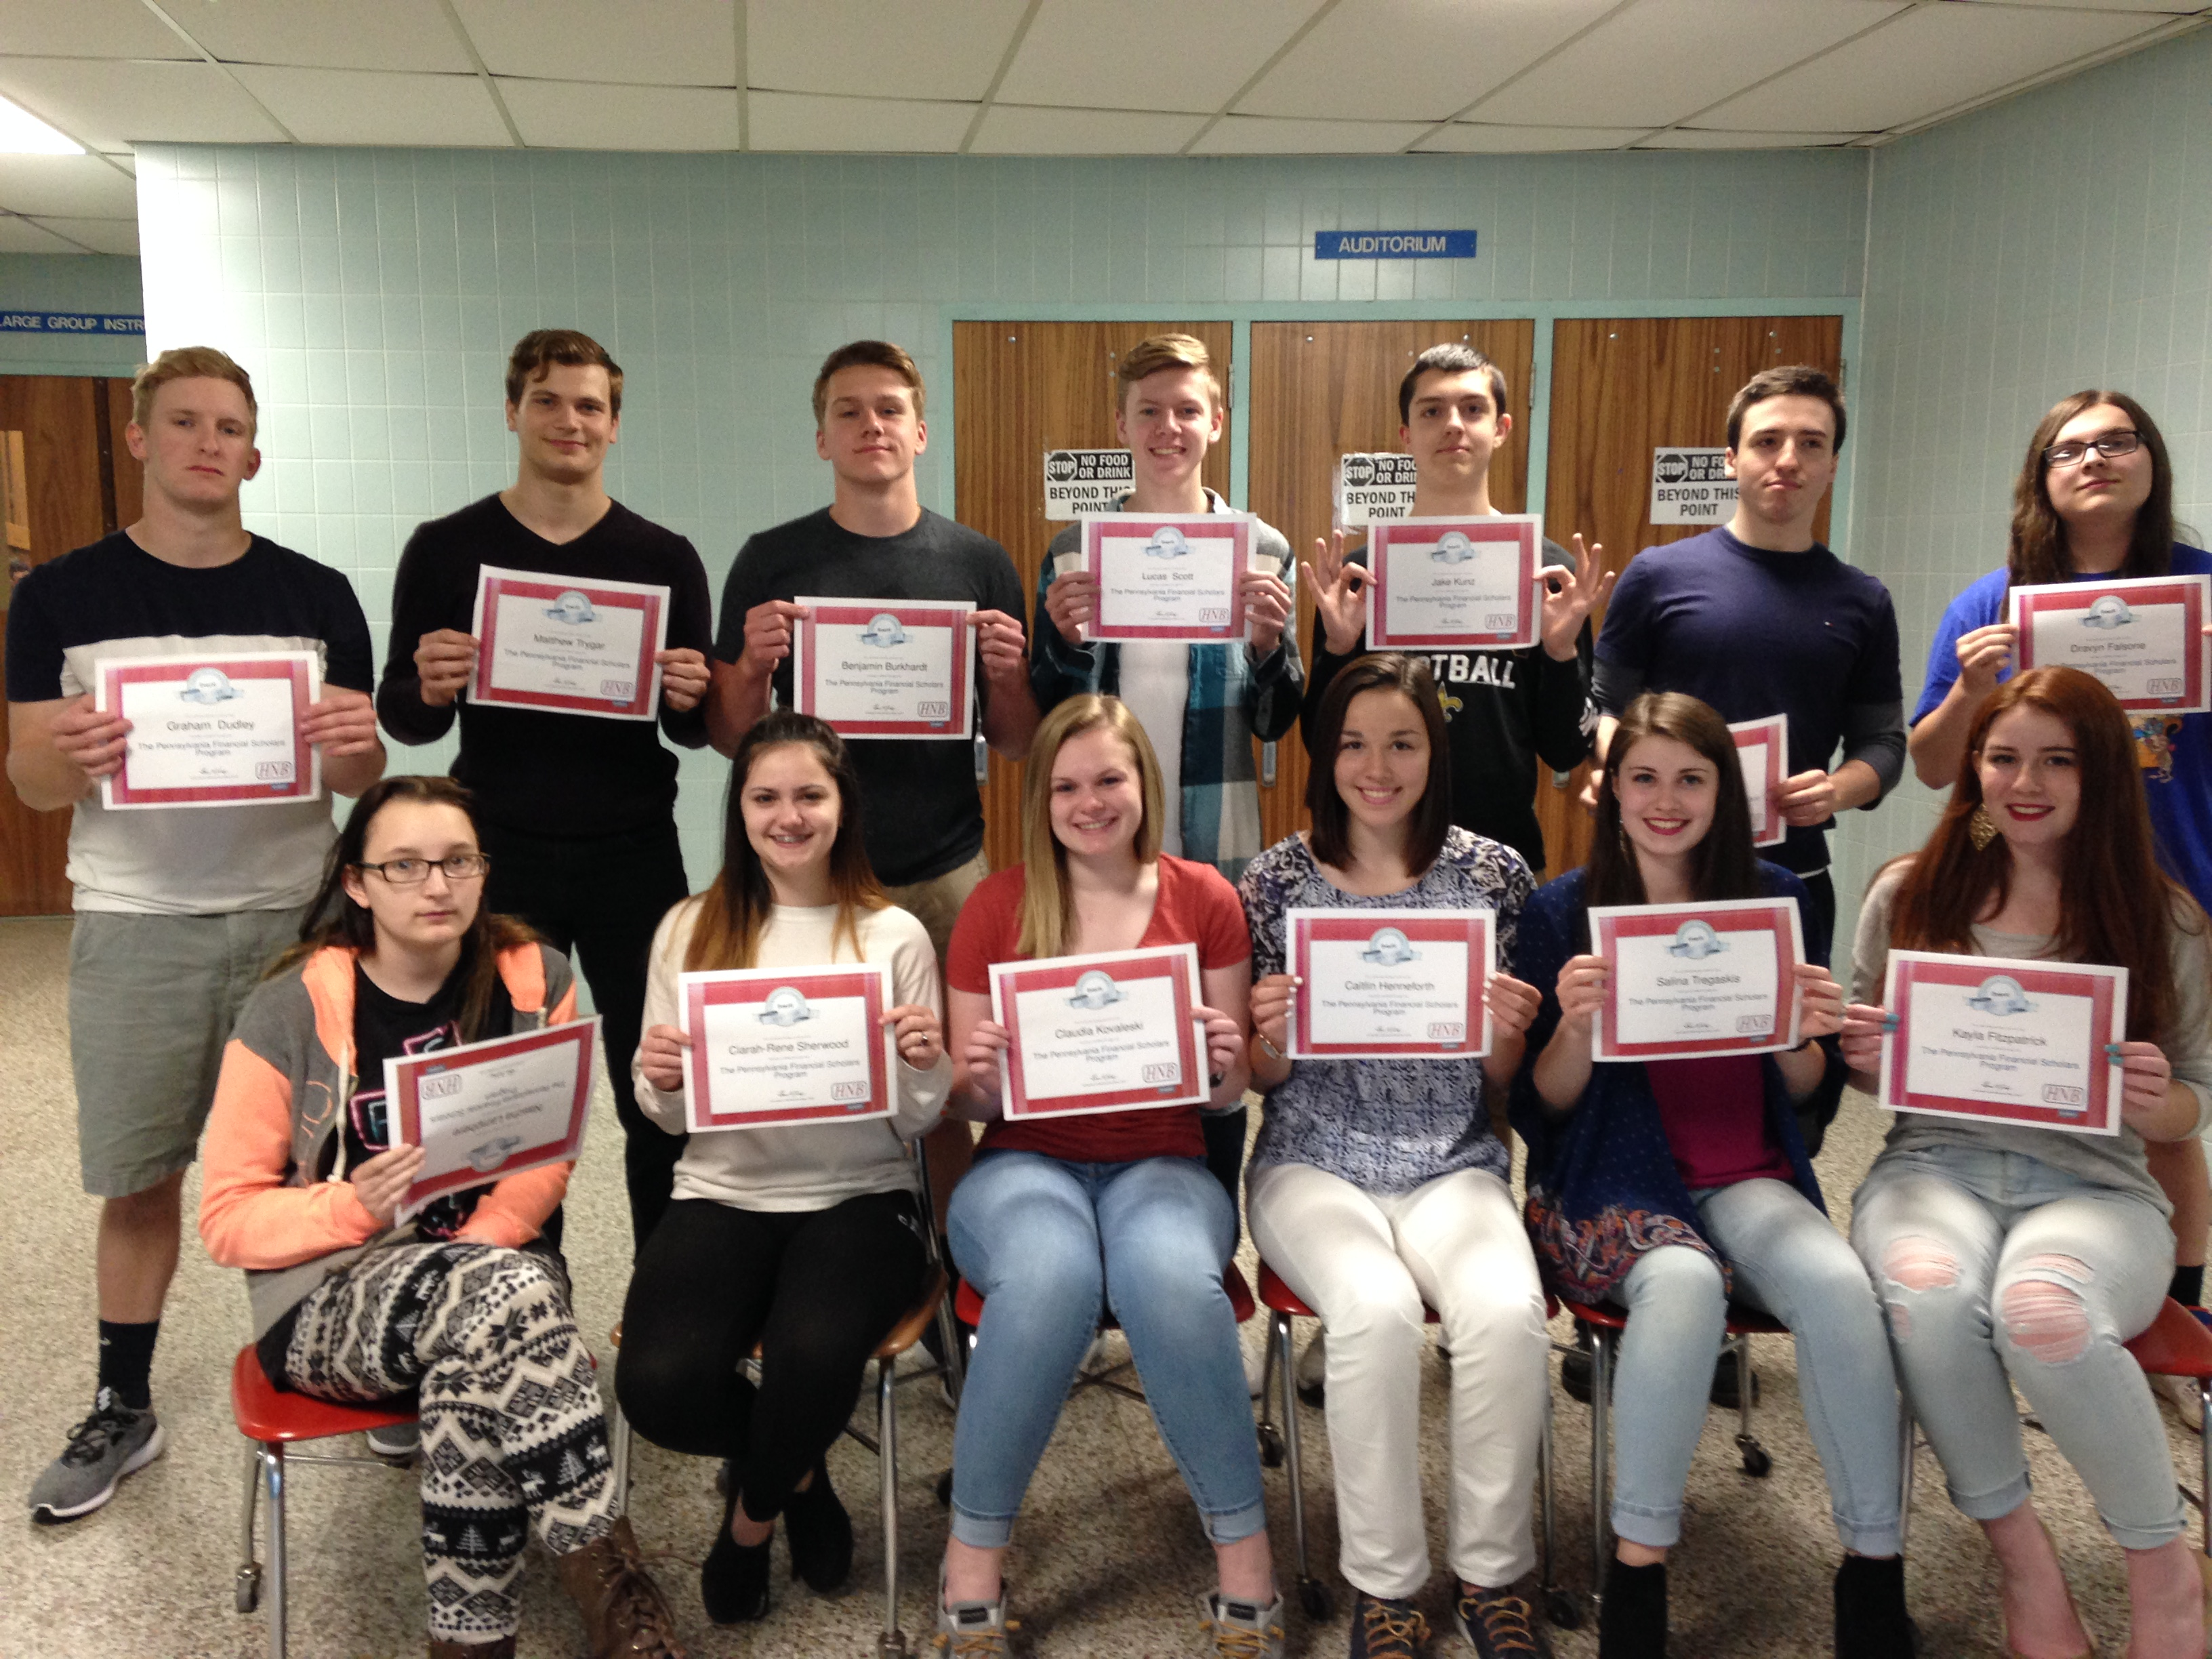 Western Wayne Business Students Complete Financial Literary Course